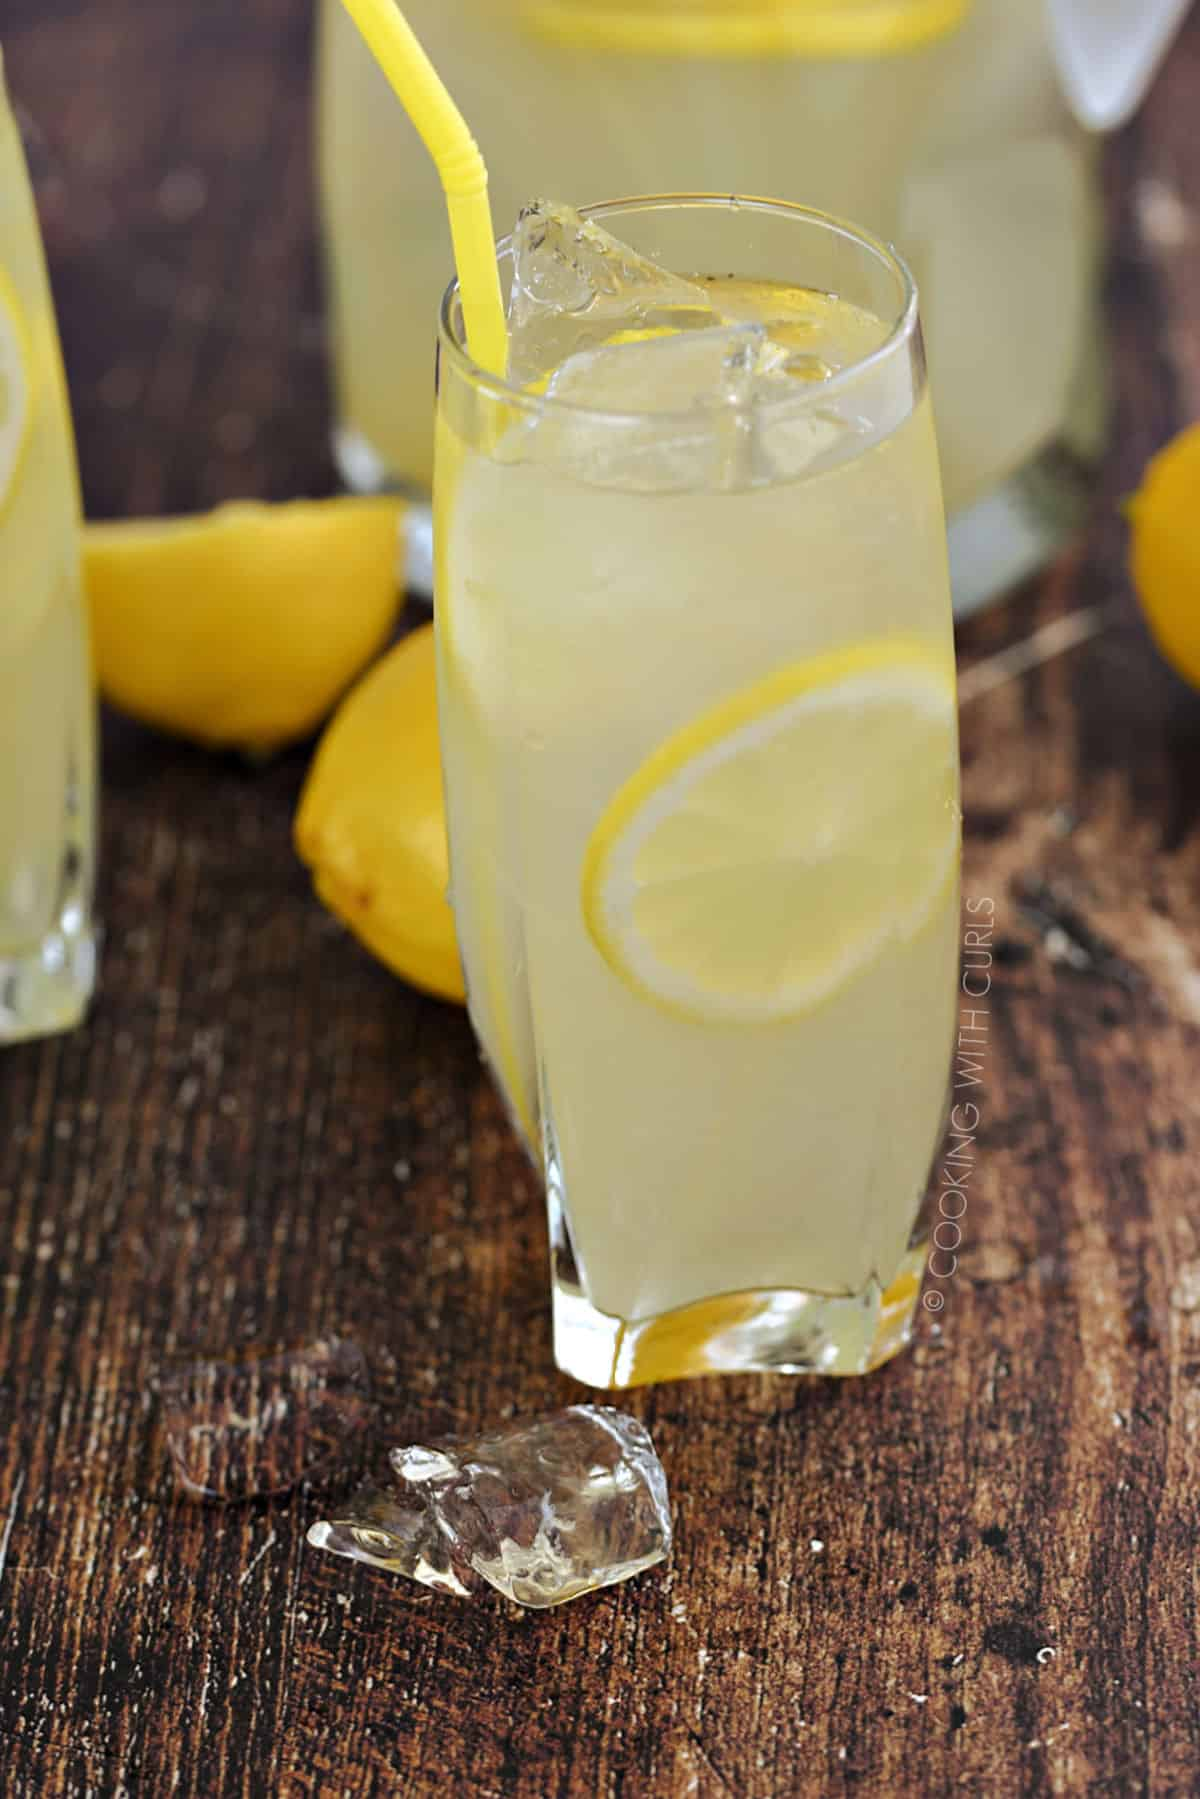 A big glass of lemonade, ice cubes and lemon slices with a pitcher and fresh lemons in the background.